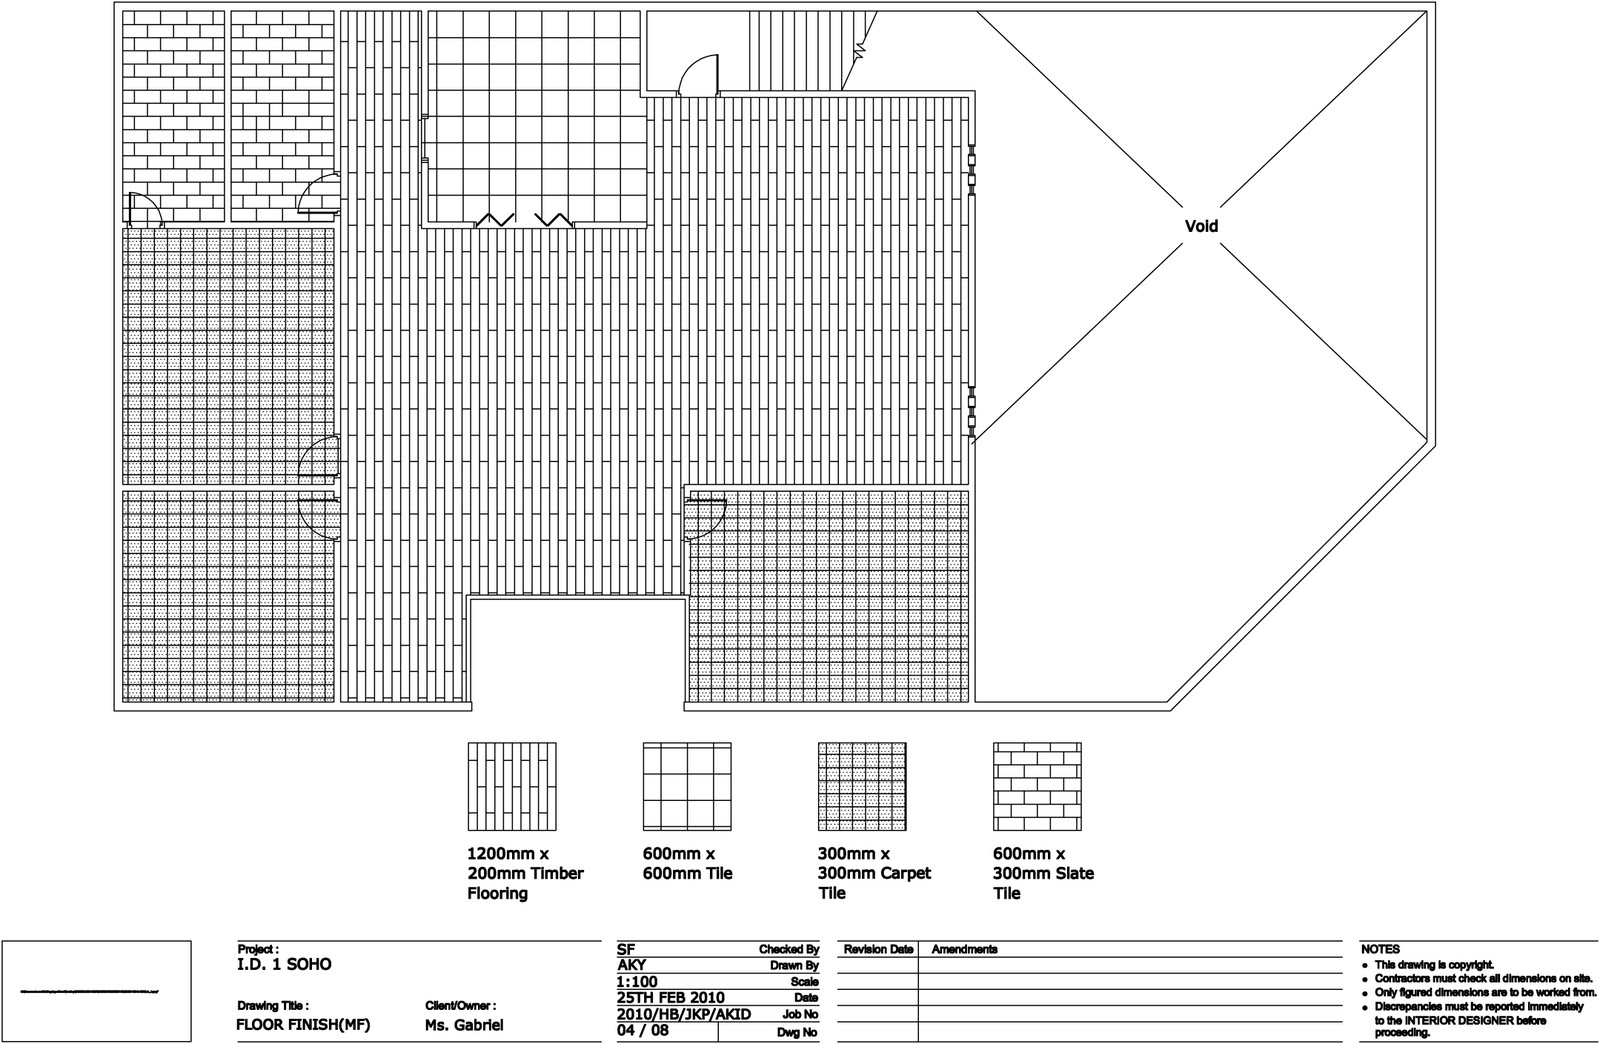 Floor Finishes Plan Images Frompo 1